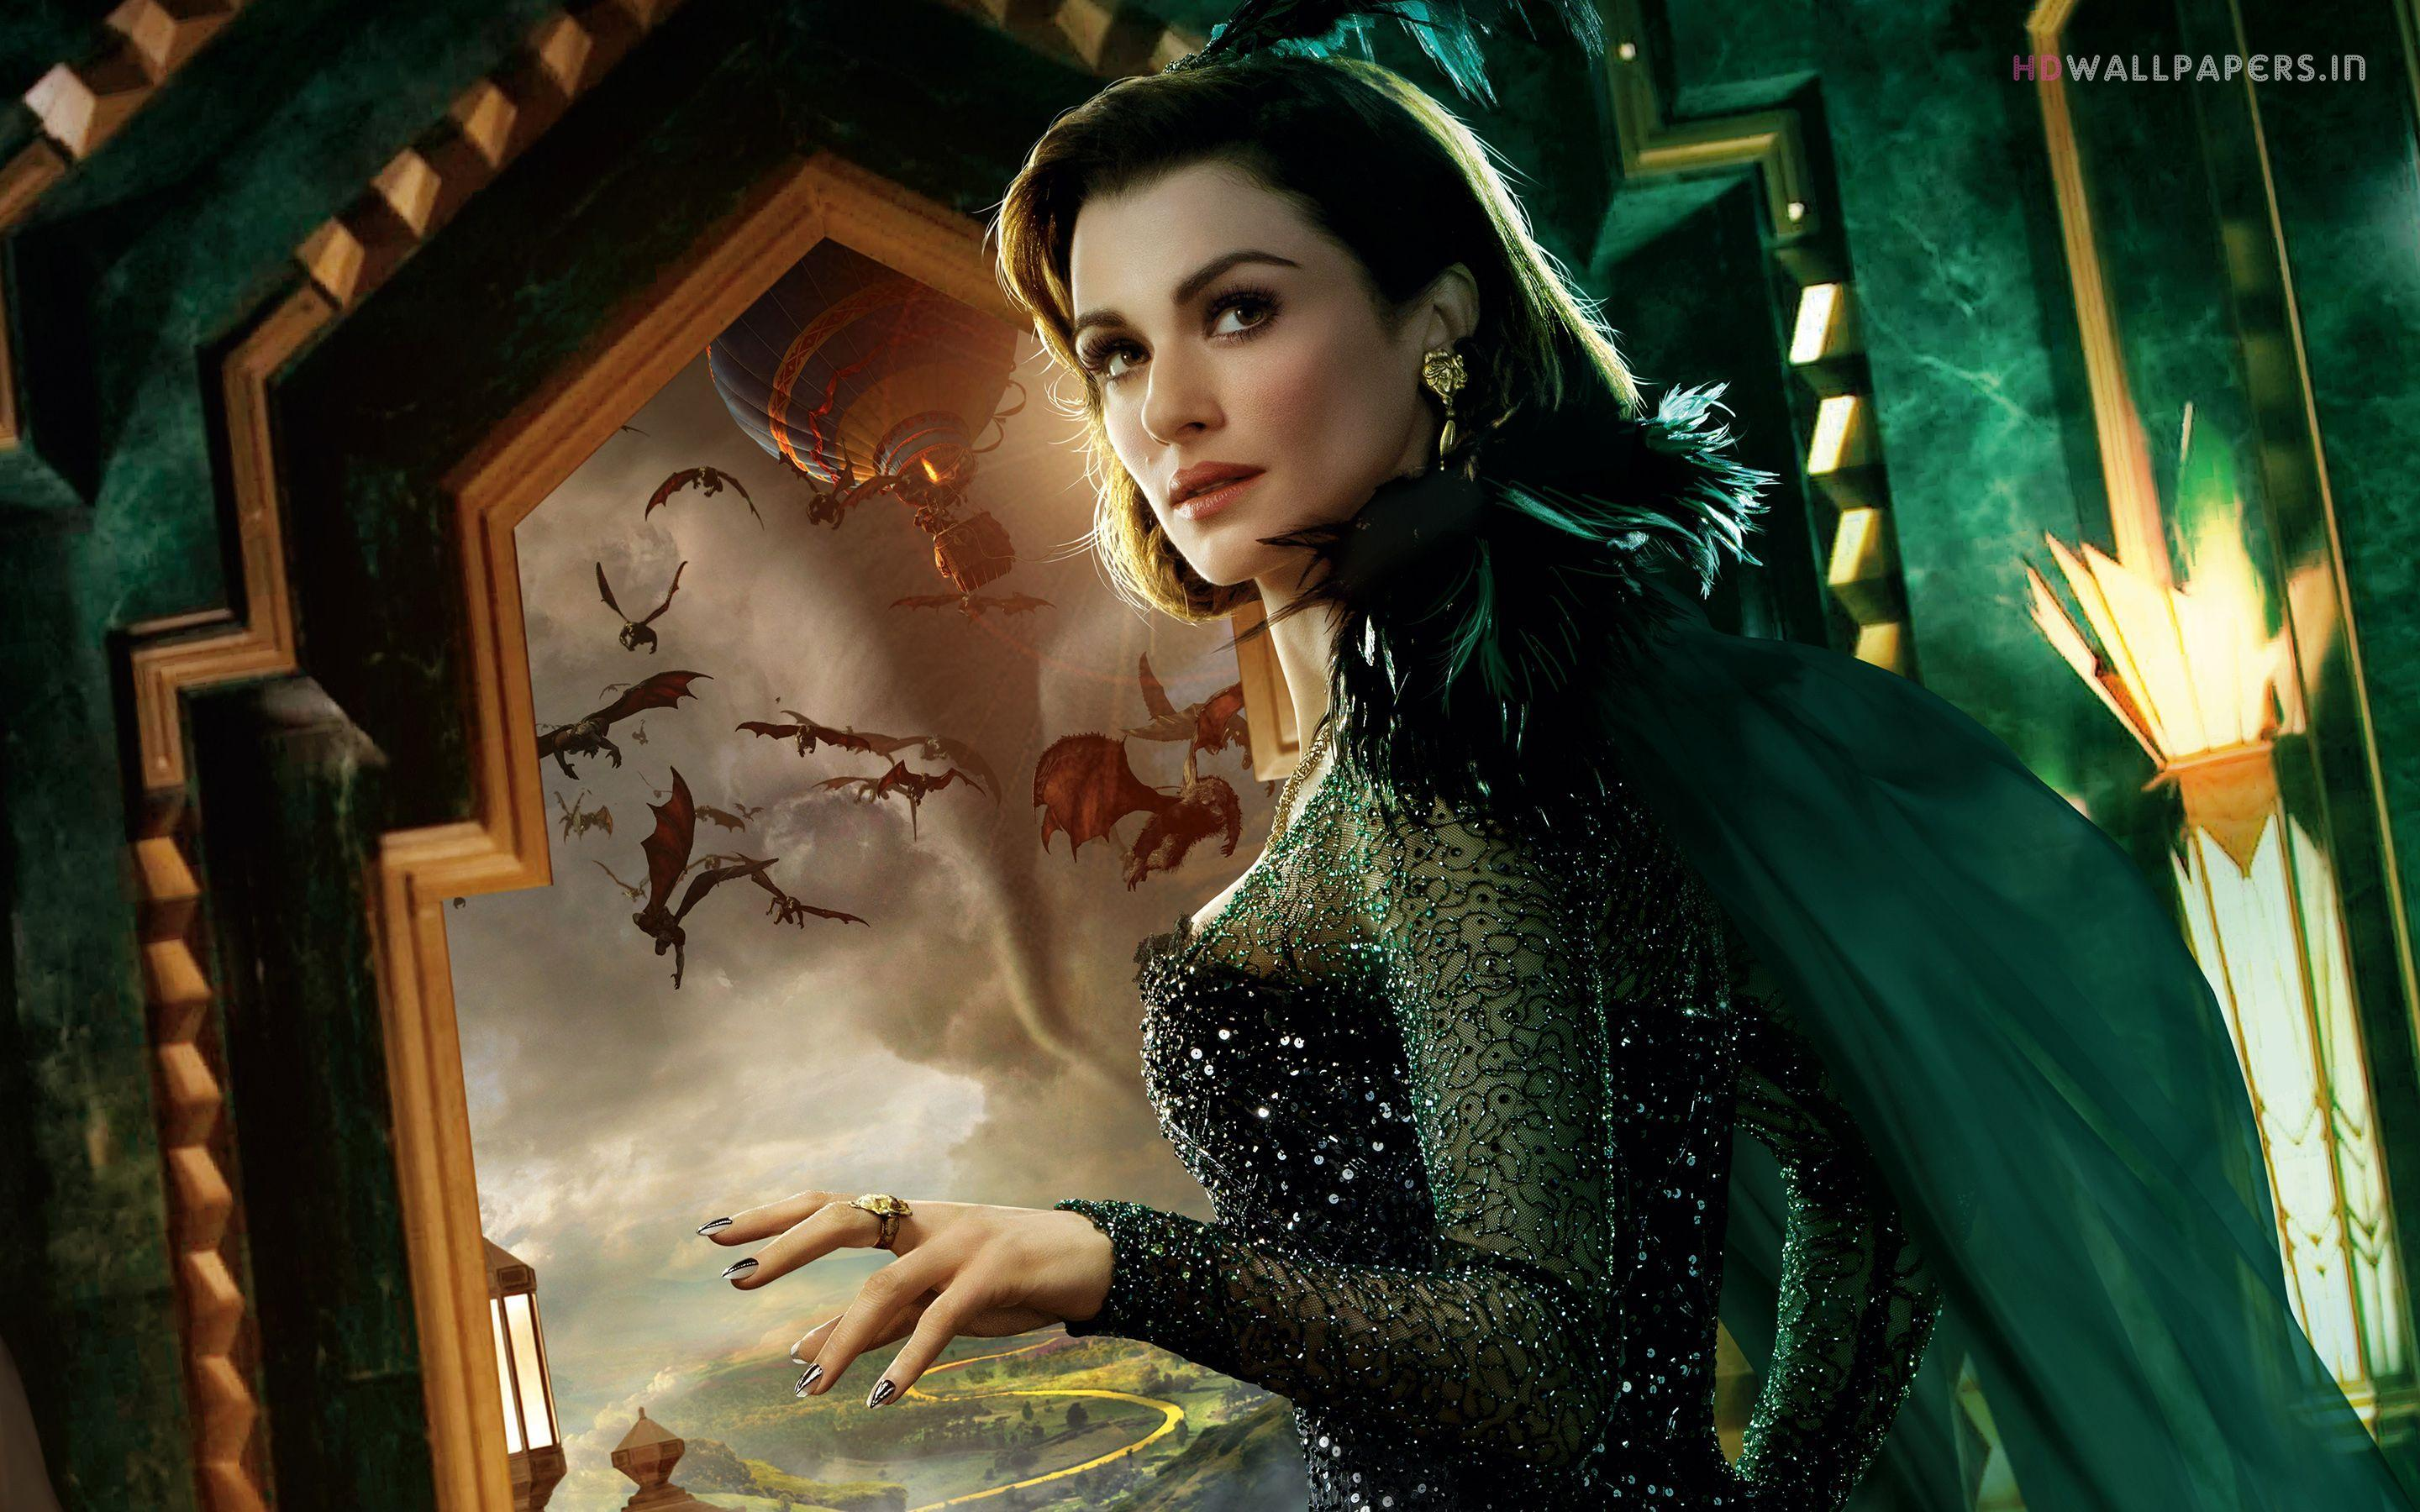 Rachel Weisz Oz the Great and Powerful Wallpapers | HD Wallpapers